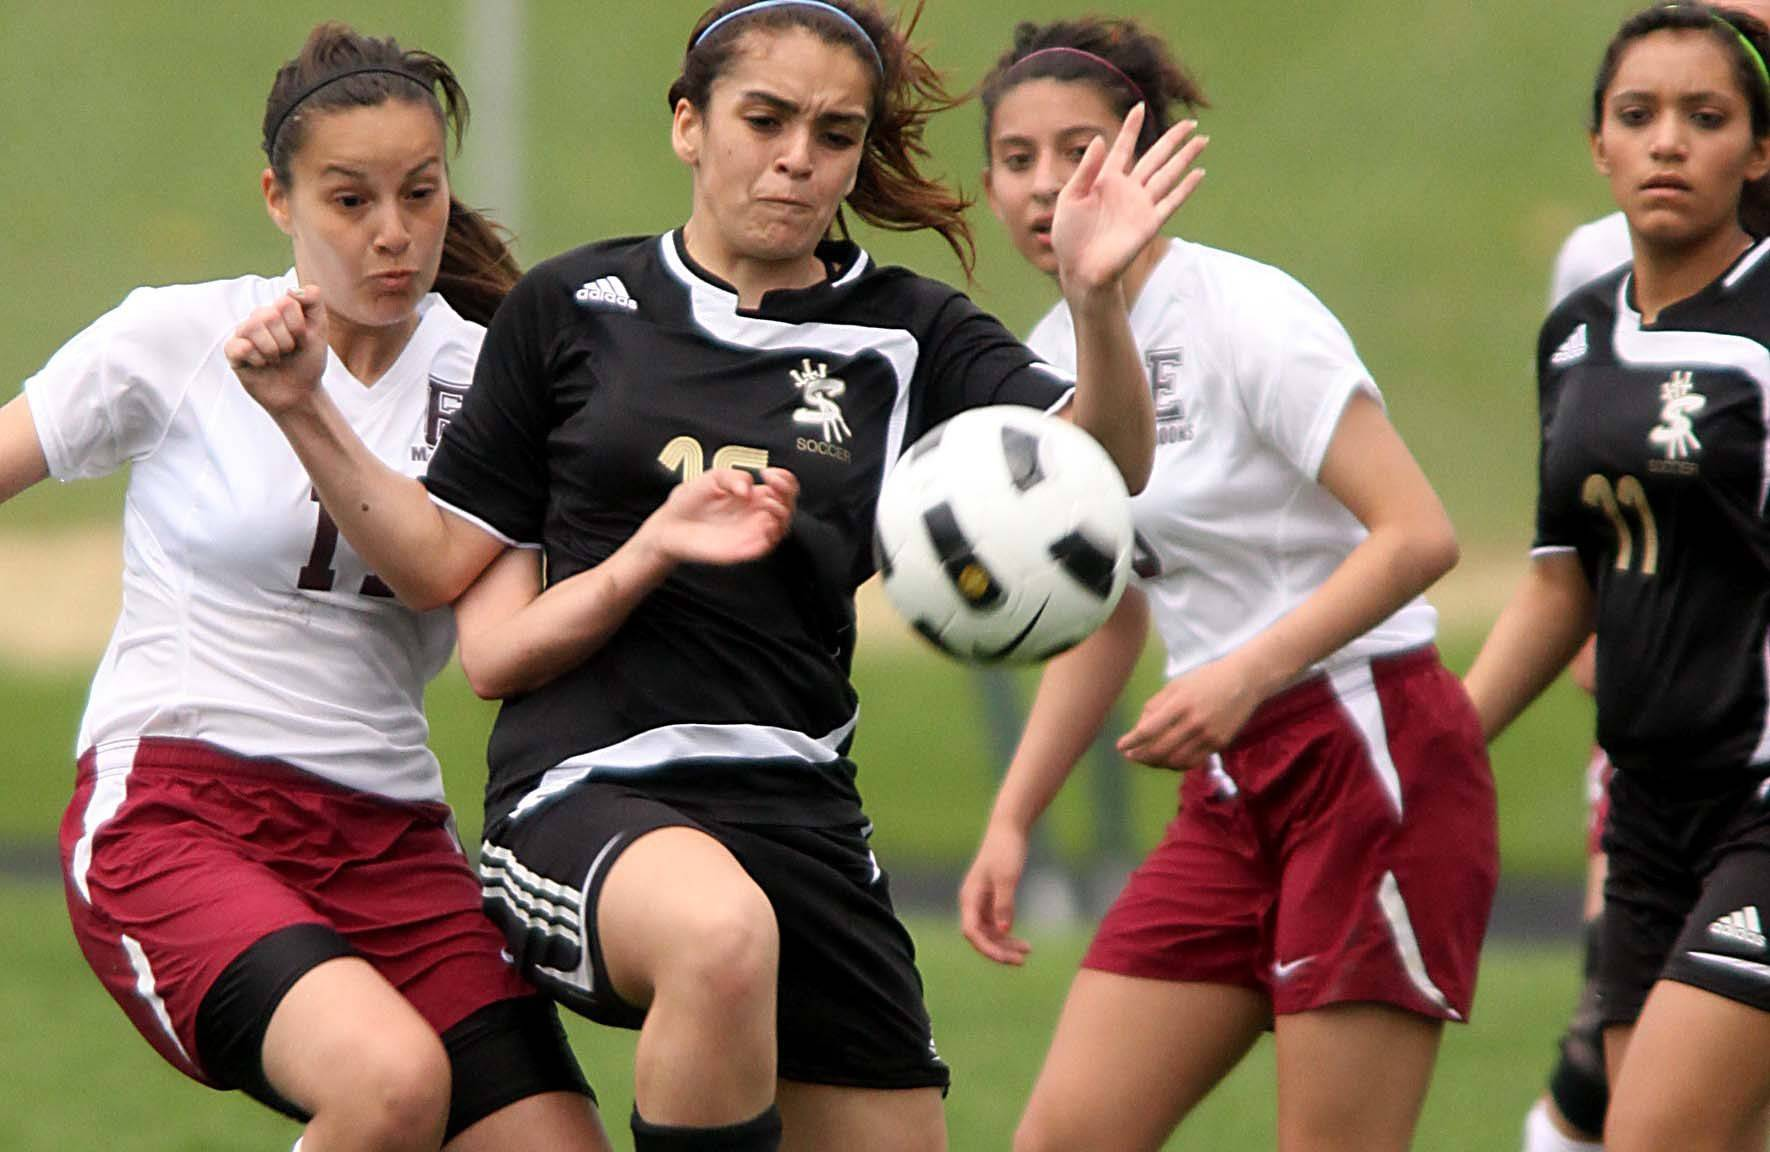 Lisette Sanchez of Elgin and Sharice Ellenwood of Streamwood battle for the ball Tuesday. At center right is Elgin's Jennifer Lopez, and at far right is Streamwood's Joceline Jimenez.